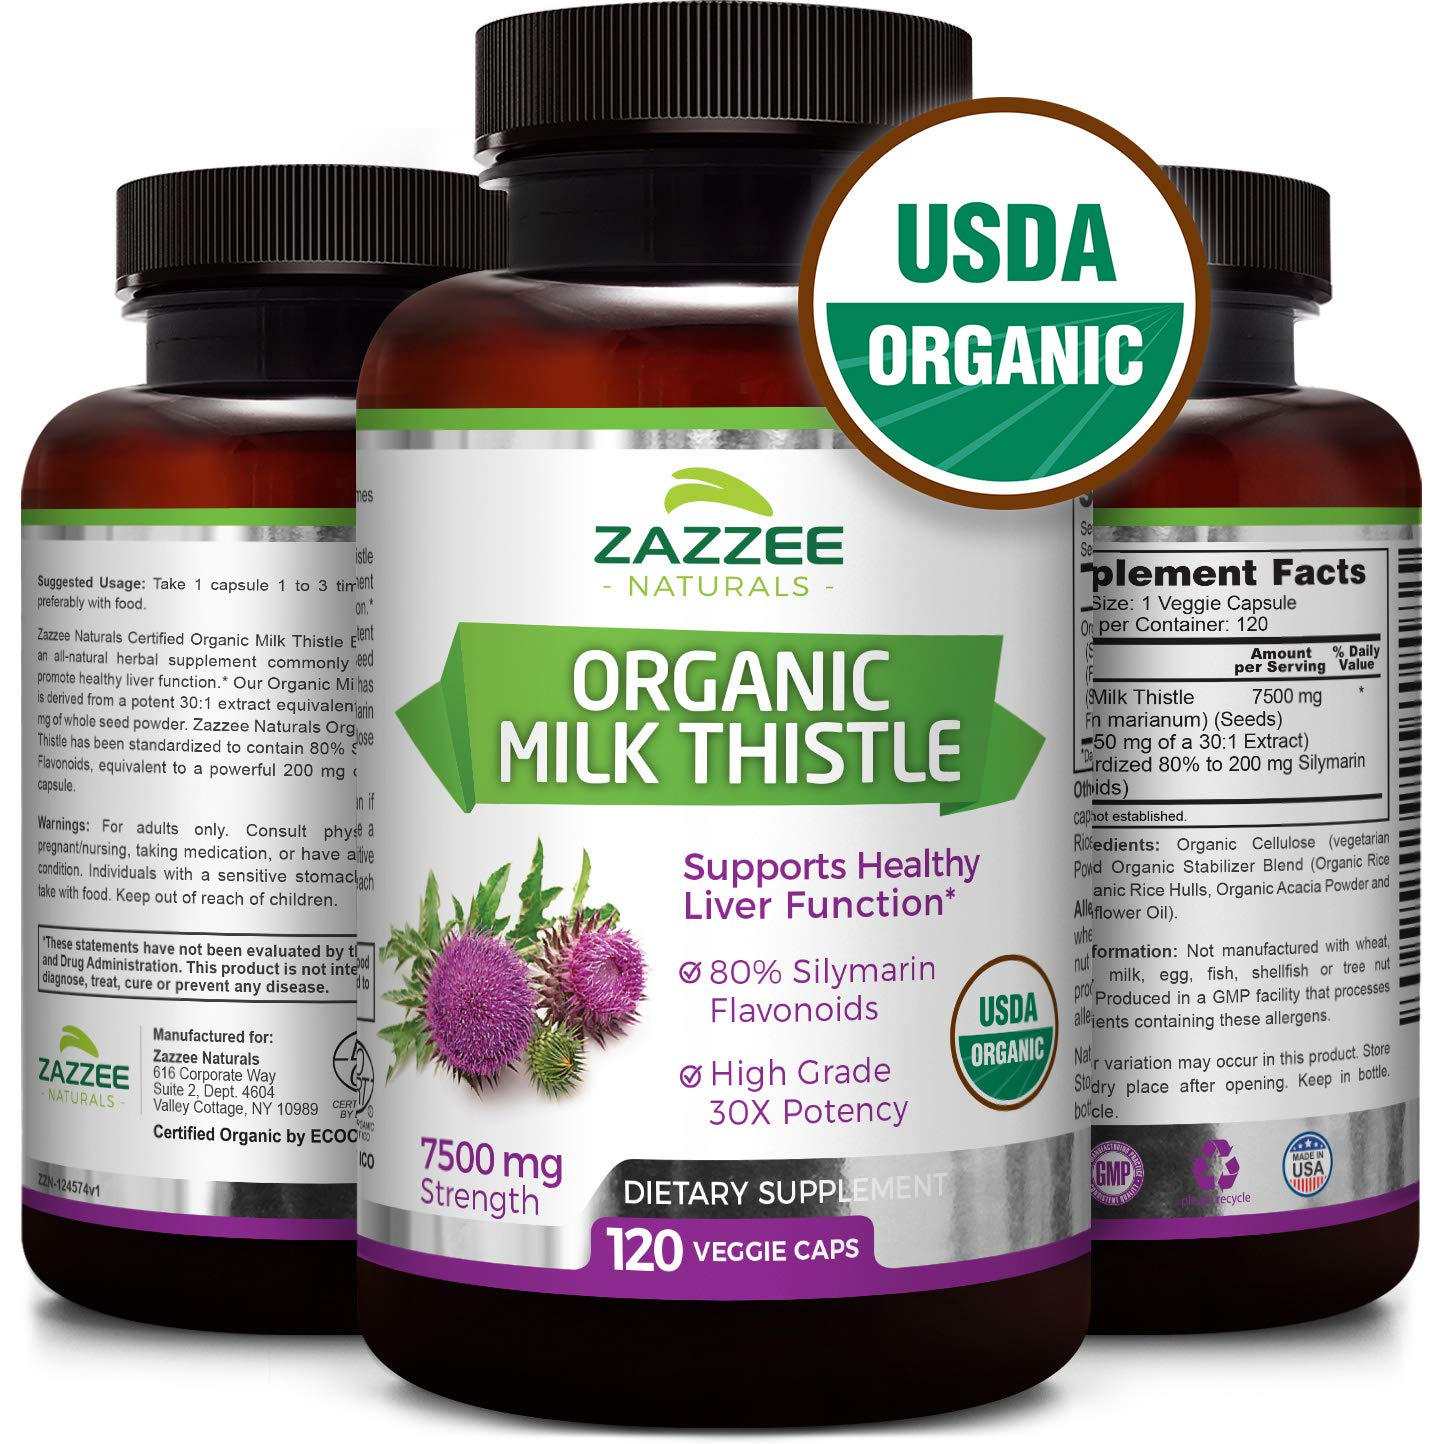 USDA Organic Milk Thistle | 7500 mg Strength | 120 Veggie Caps | 30X Concentrated | 80% Silymarin Flavonoids | Non-GMO, Vegan and All-Natural | USDA Certified Organic | Extra Strength Liver Detox